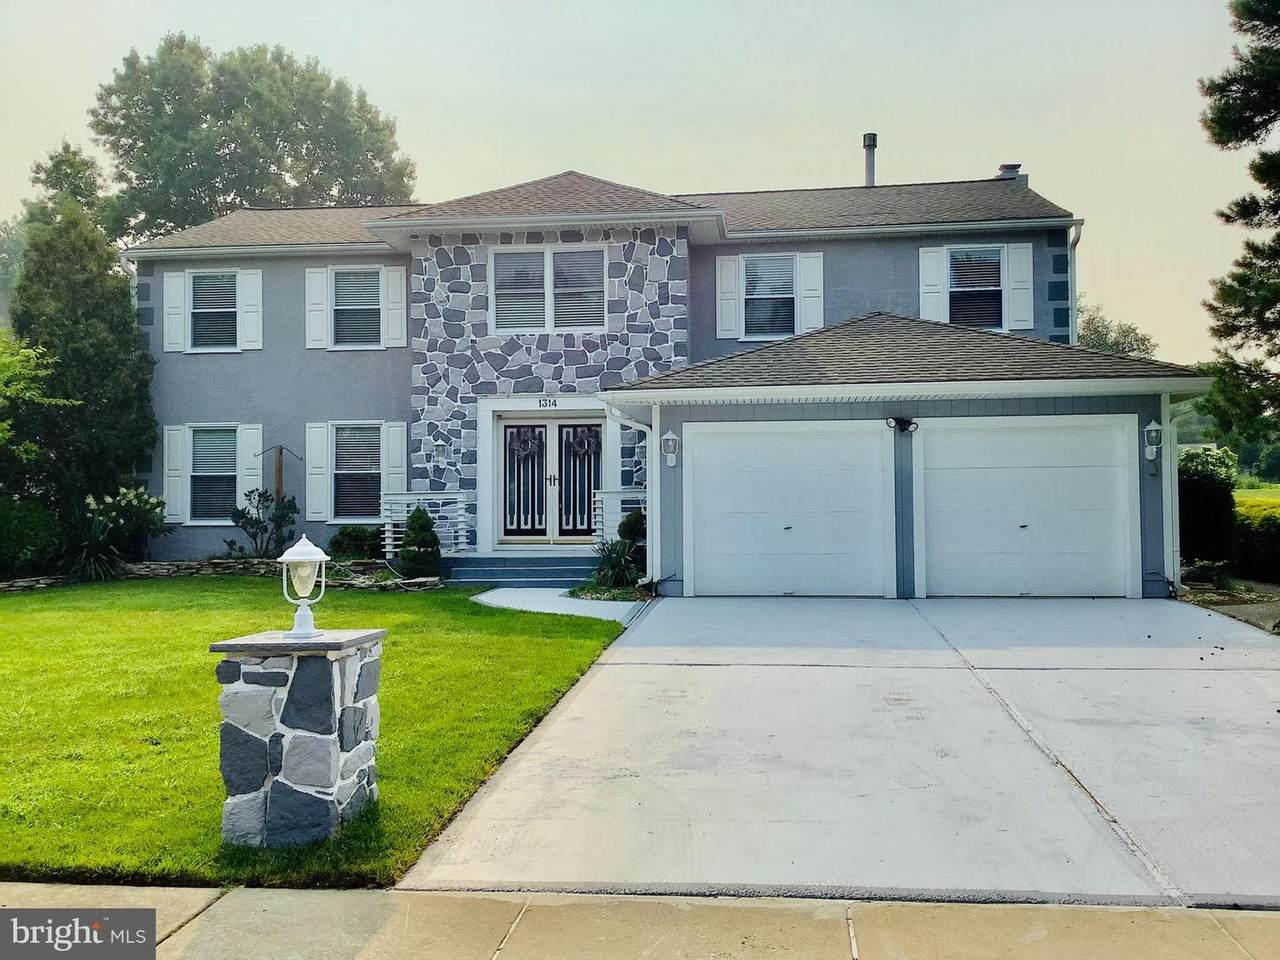 1314 Barnesdale Rd - Photo 1